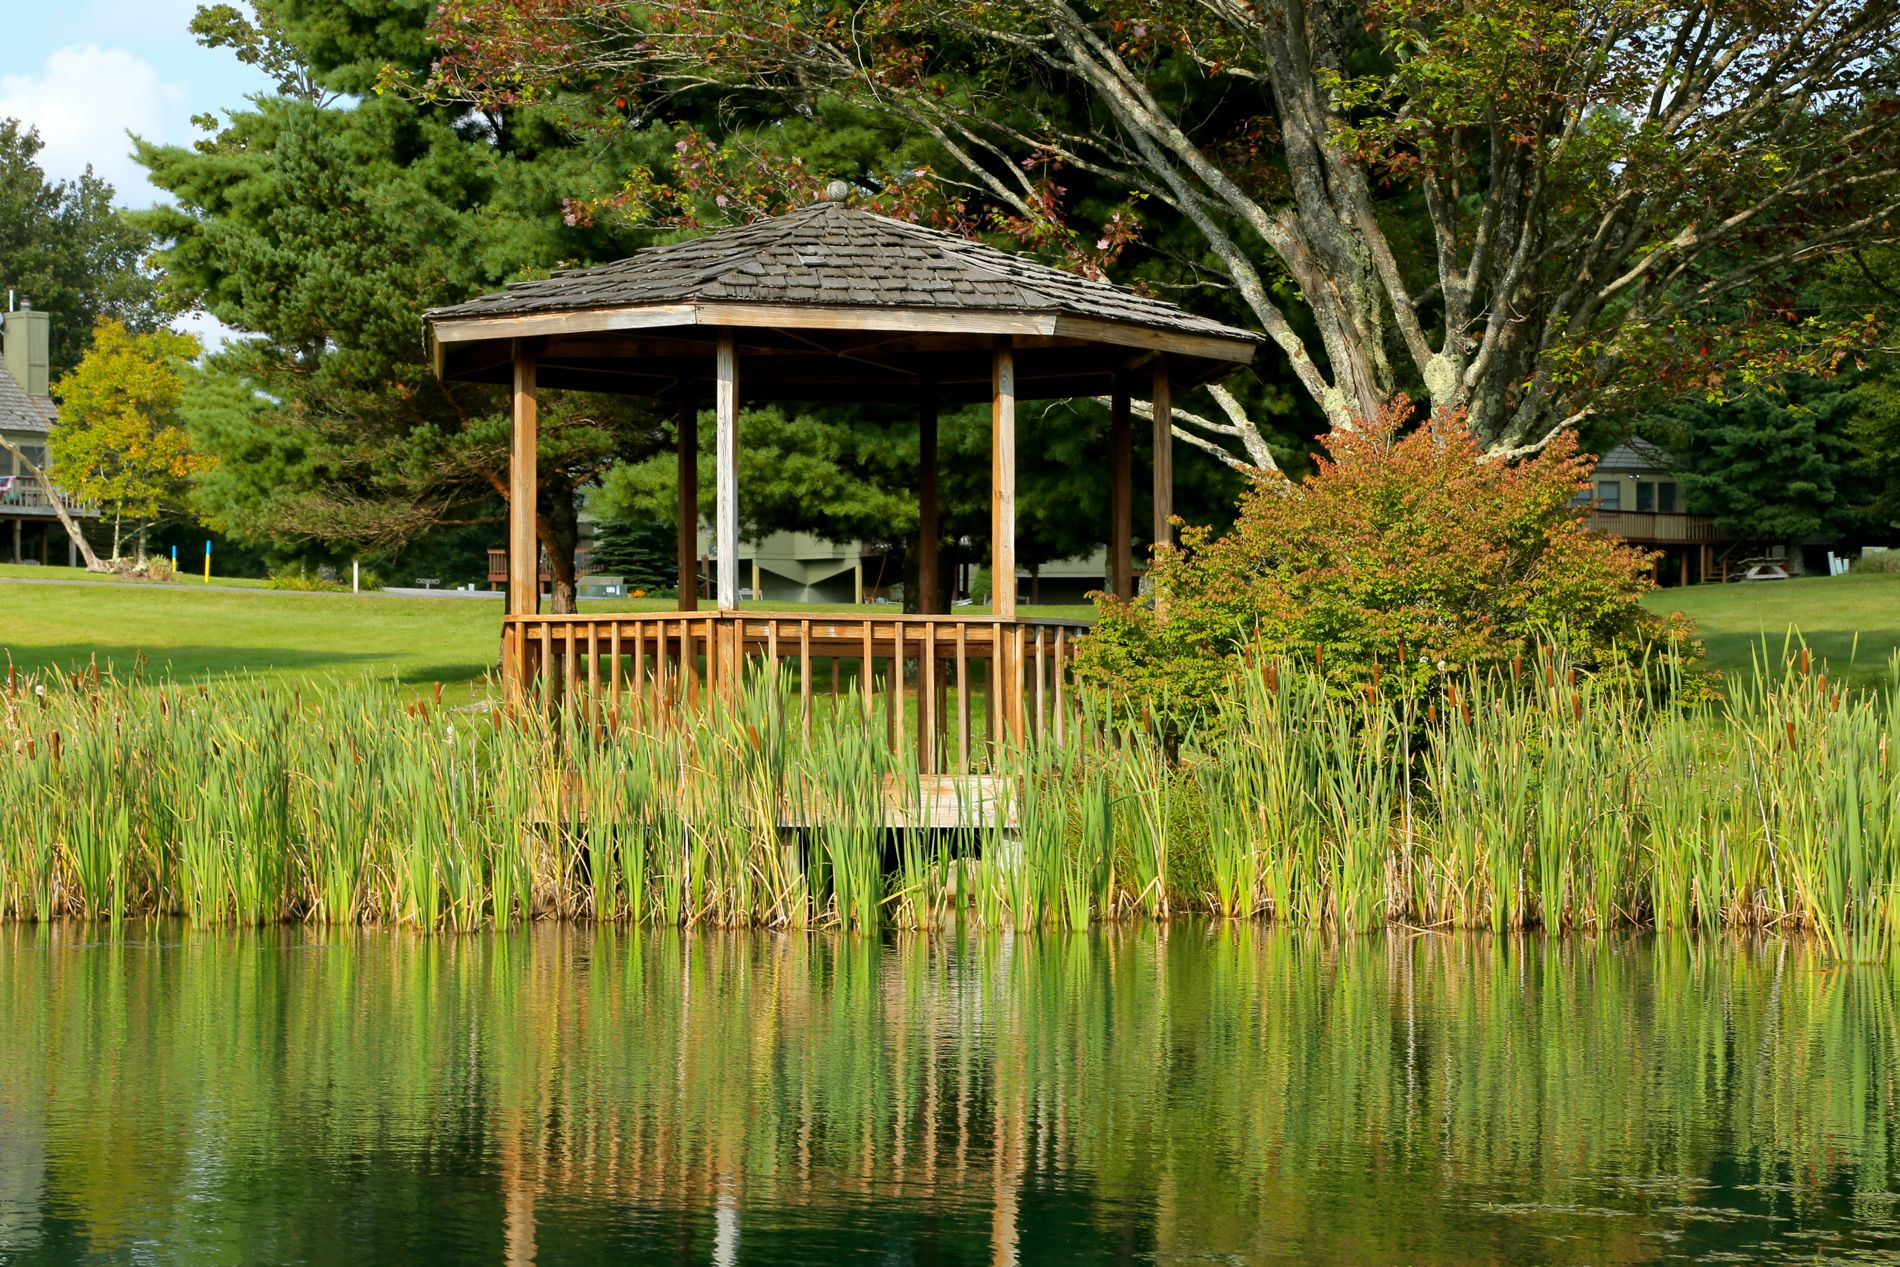 Catch (and release!) fish in one of our ponds or relax in the gazebo